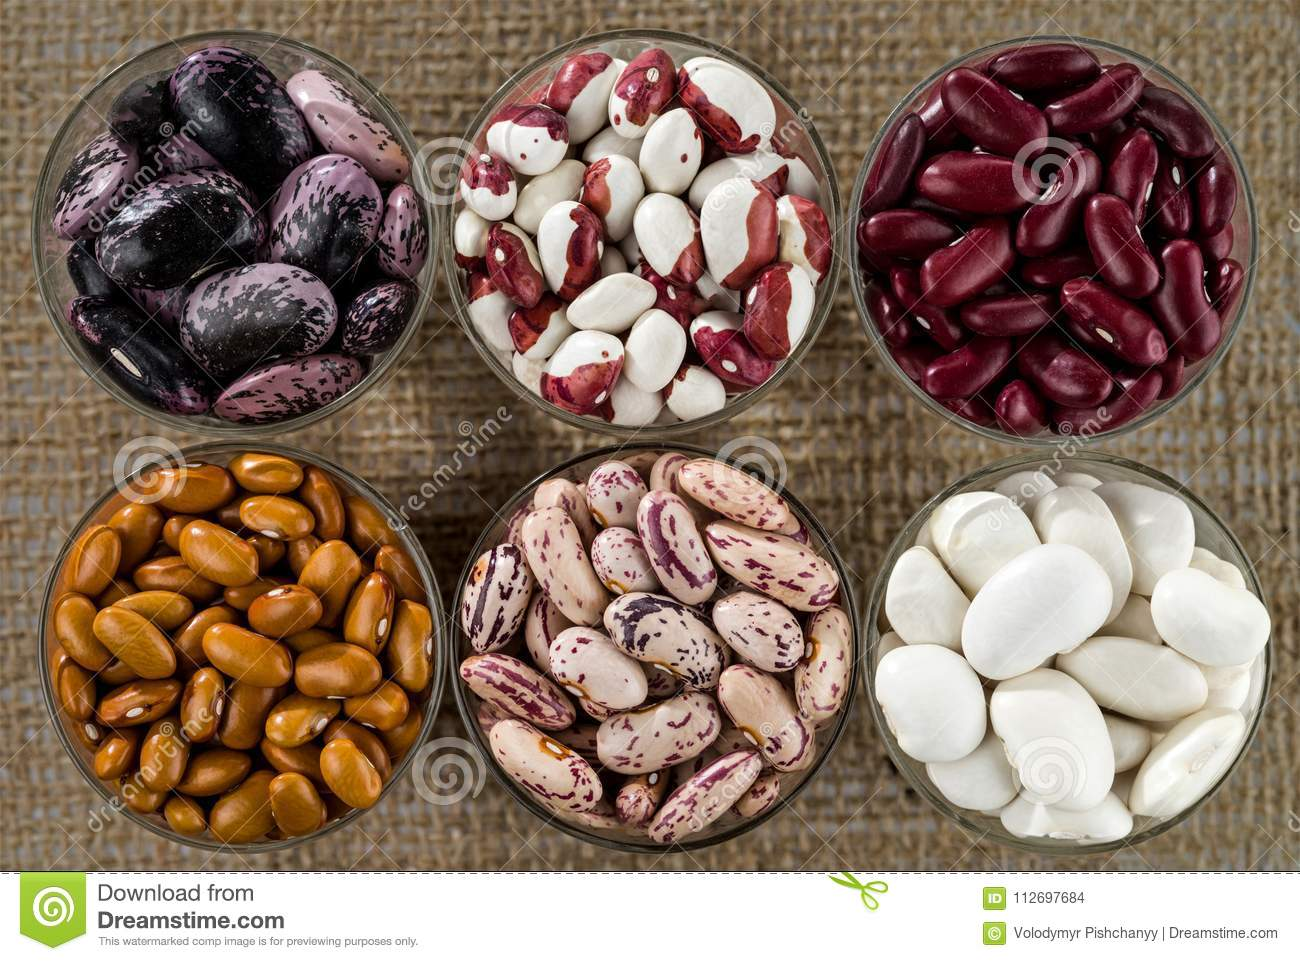 Six different varieties of beans